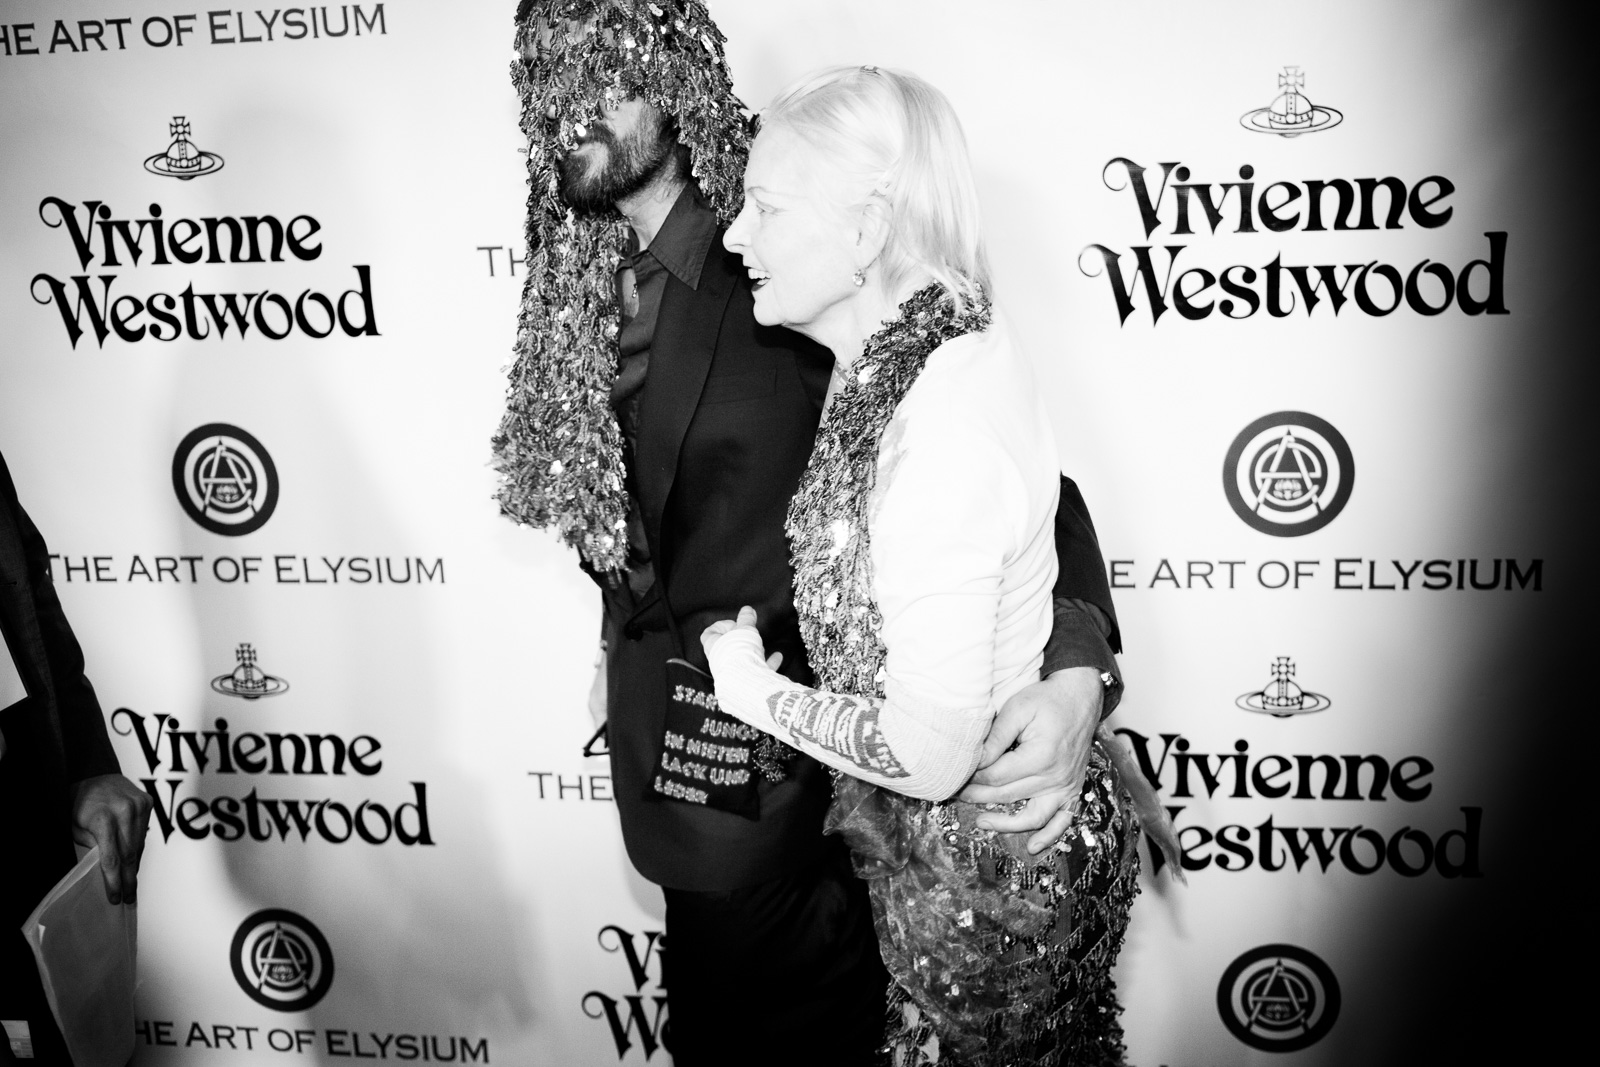 Designer Vivienne Westwood and husband Andreas Kronthaler attend The Art of Elysium 2016 HEAVEN Gala presented by Vivienne Westwood & Andreas Kronthaler at 3LABS on January 9, 2016 in Culver City, California.